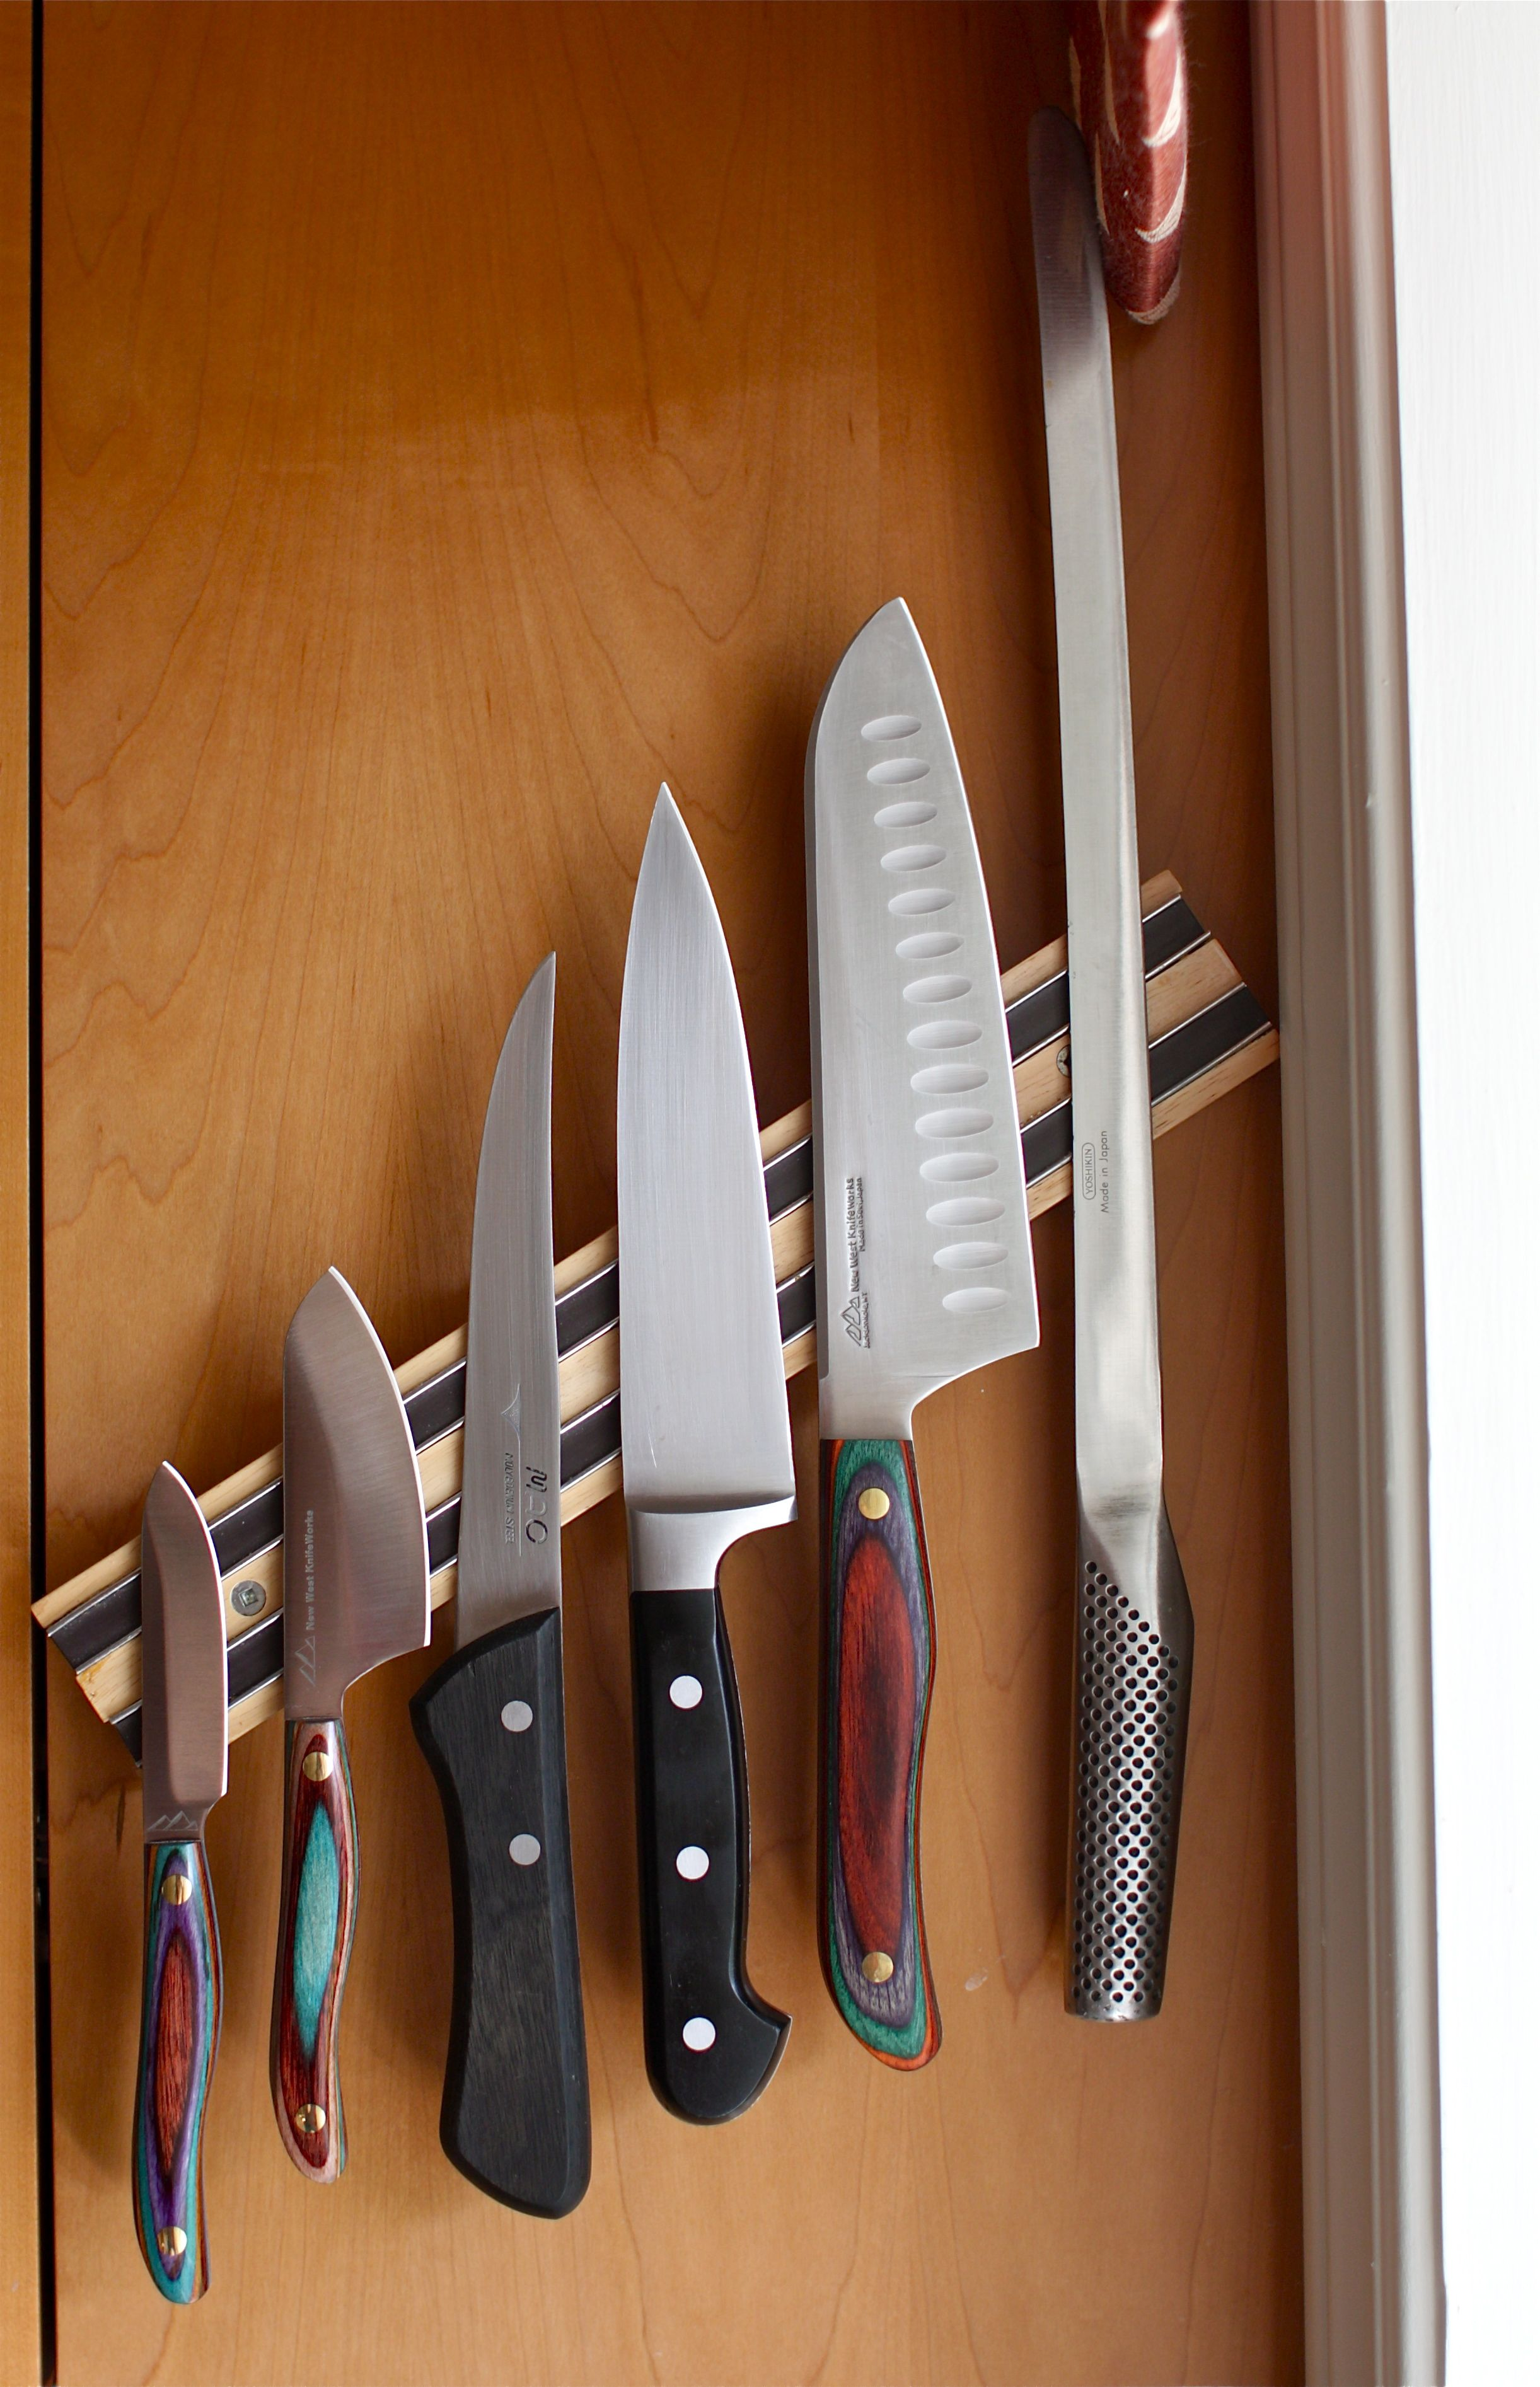 Kitchen Safety Tips Everyone Should Review